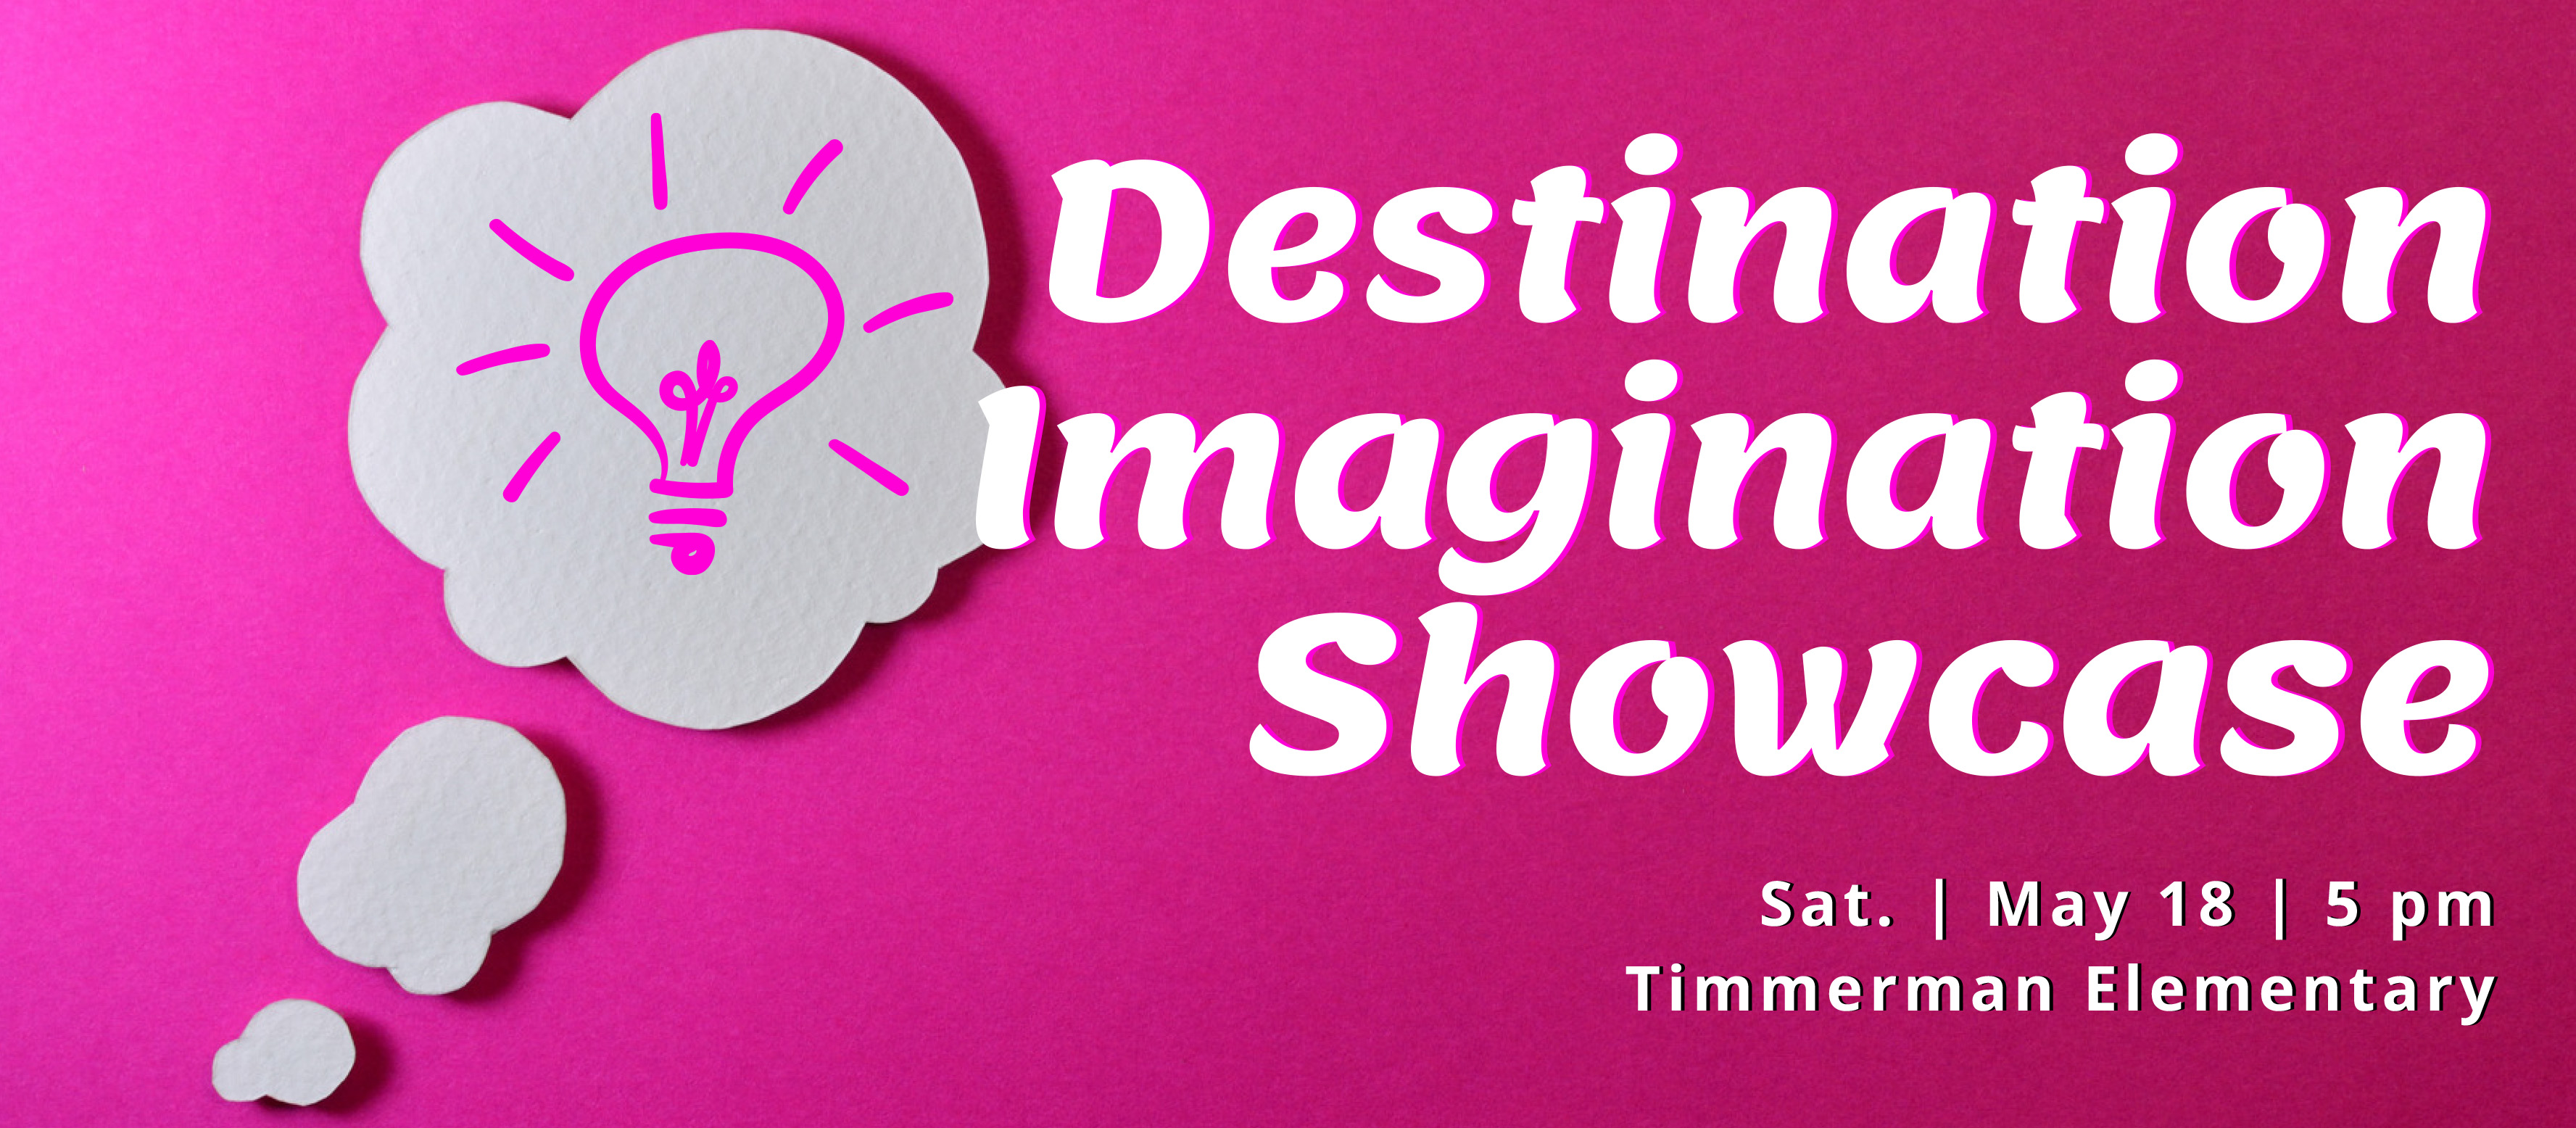 Destination Imagination Showcase May 18, 5 pm Timmerman Elementary